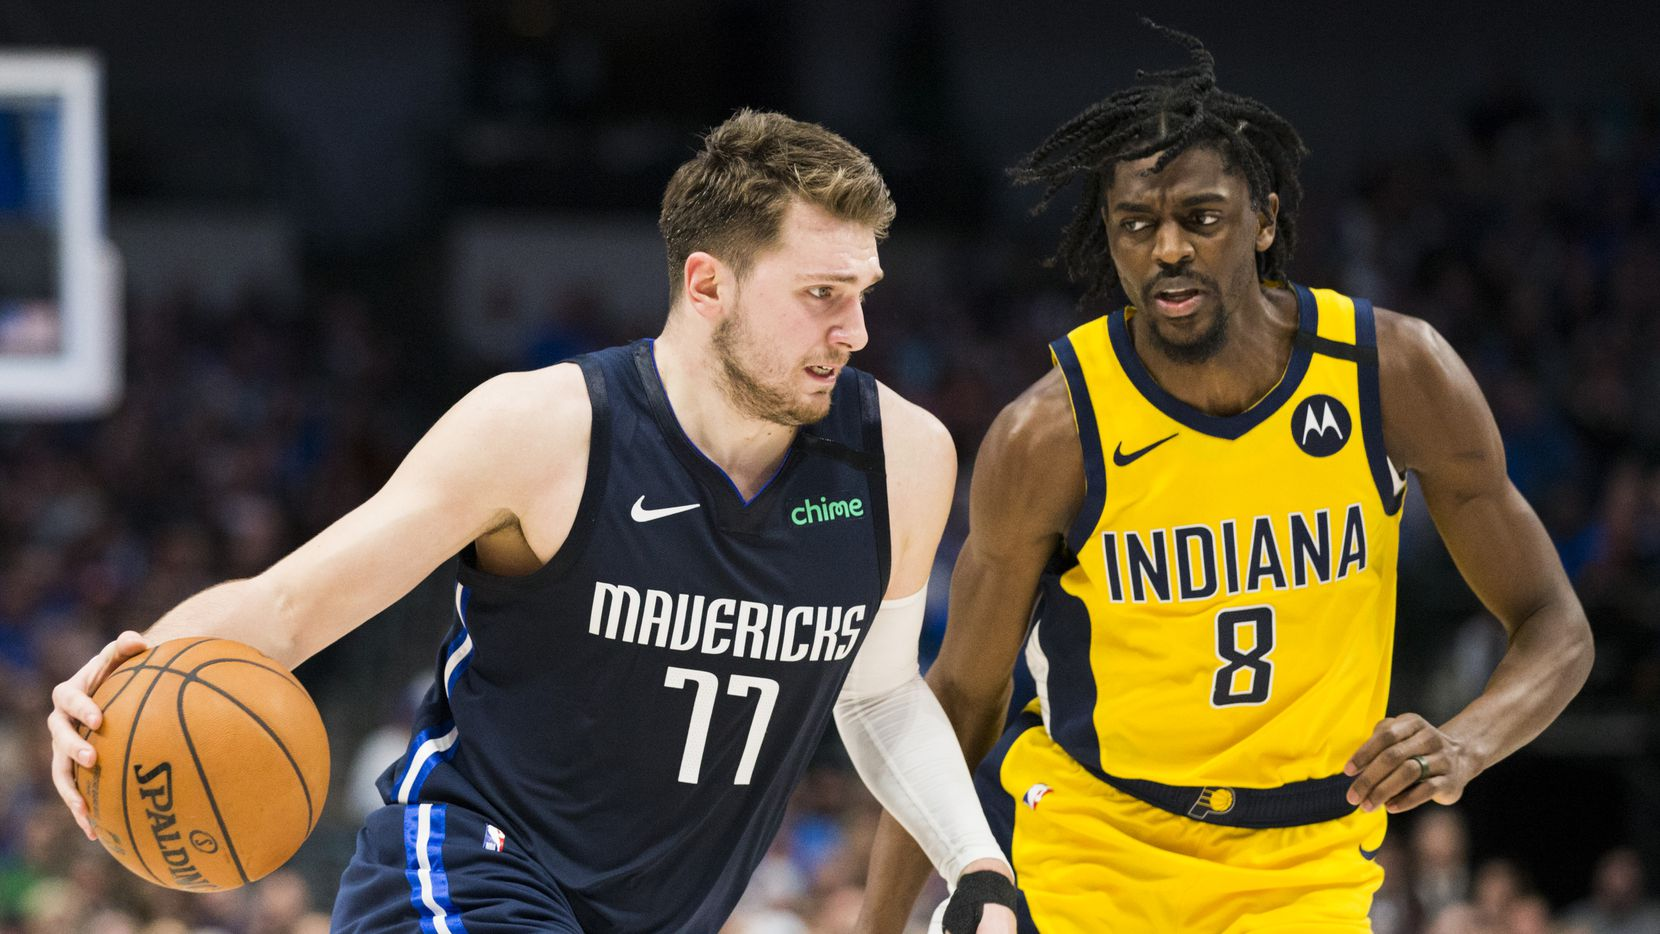 FILE - Mavericks guard Luka Doncic (77) pushes the ball down the court while defended by Pacers forward Justin Holiday (8) during the third quarter of a game on Sunday, March 8, 2020, at American Airlines Center in Dallas.